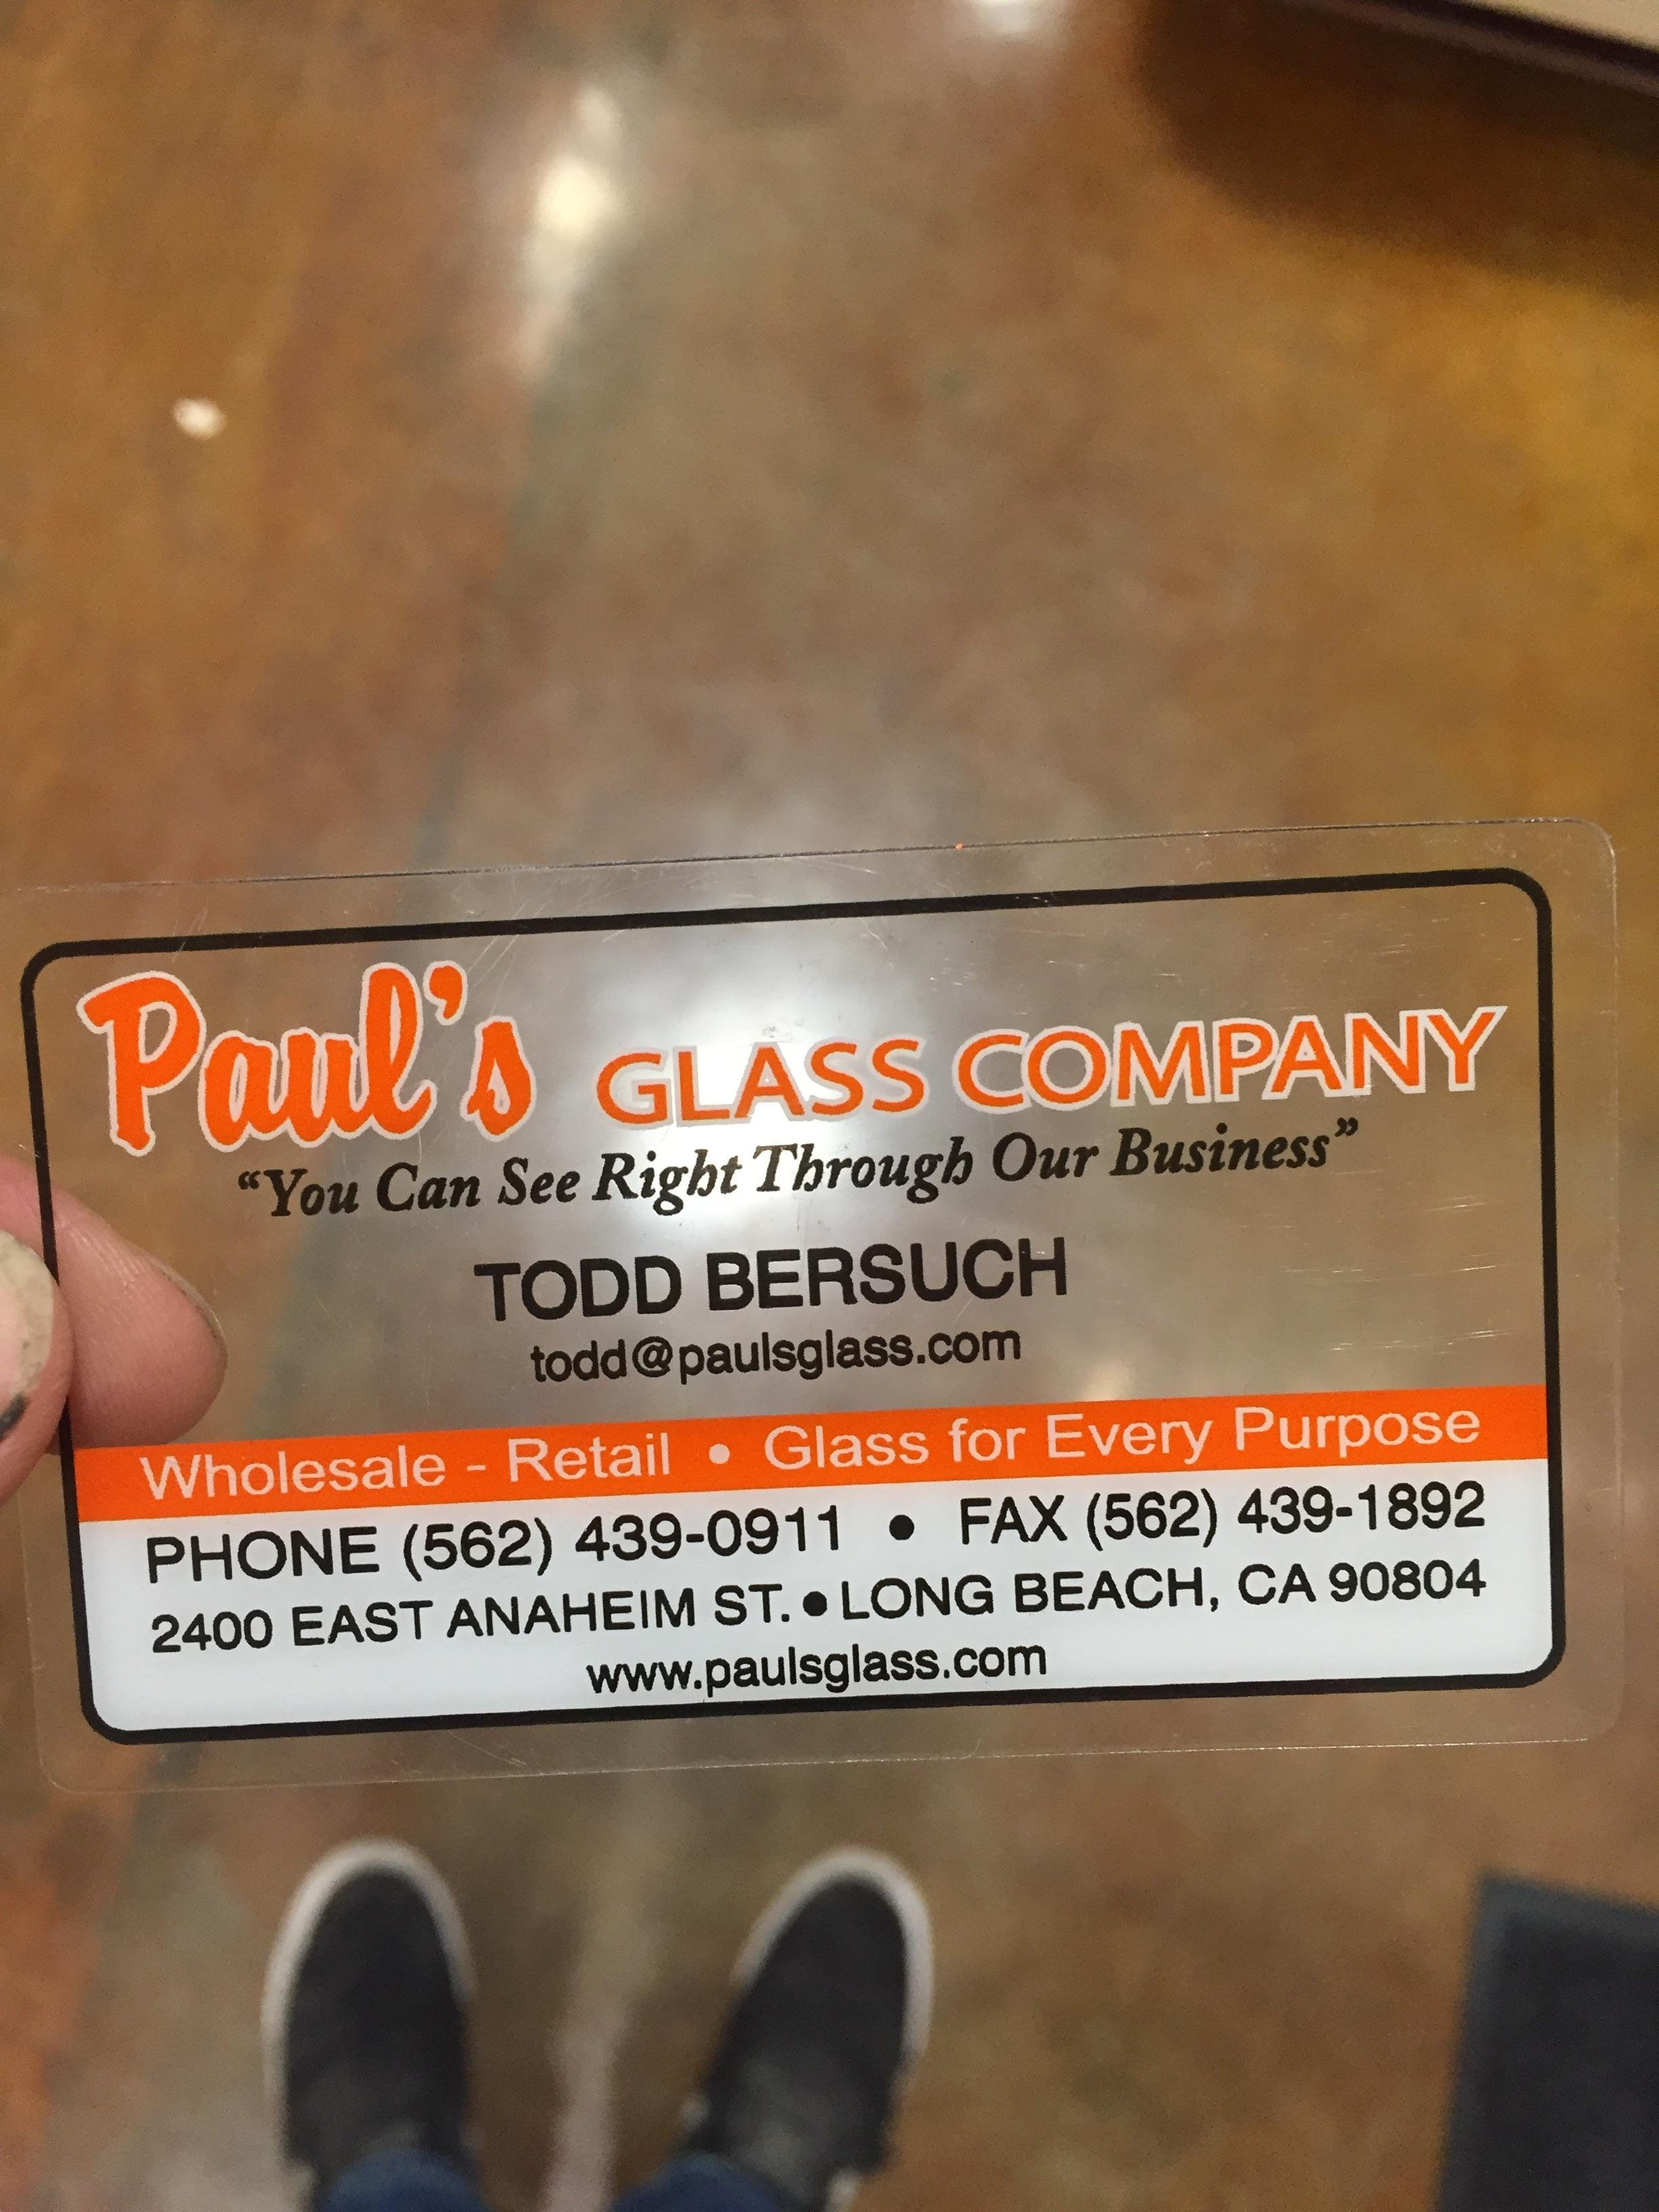 PUT ME LIKE · This glass company uses transparent business cards.